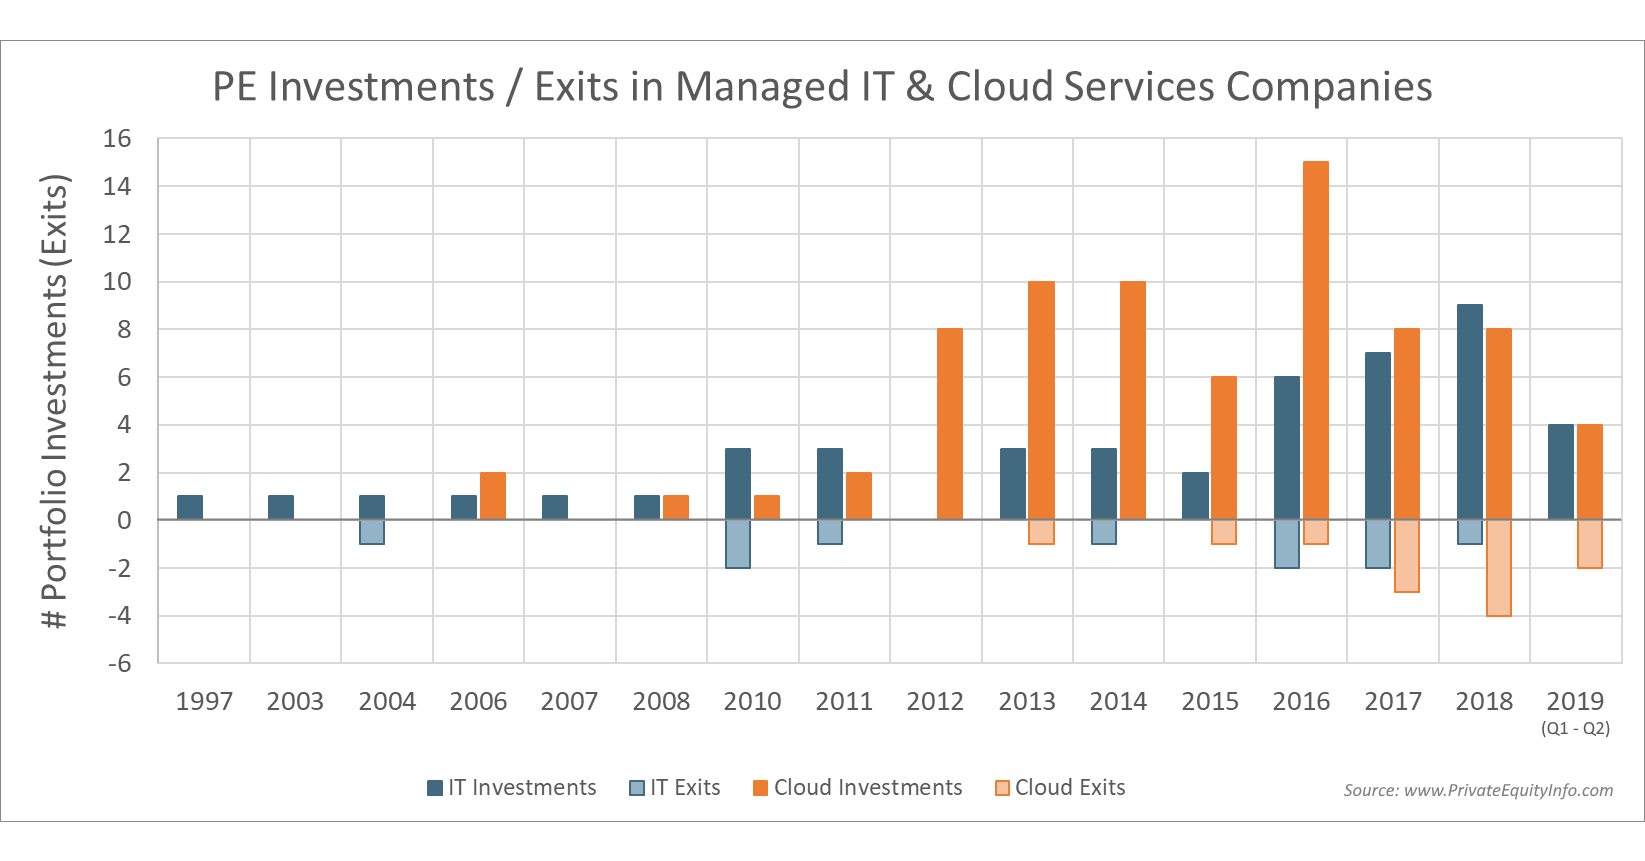 Private equity investments and exits in managed IT and cloud services companies